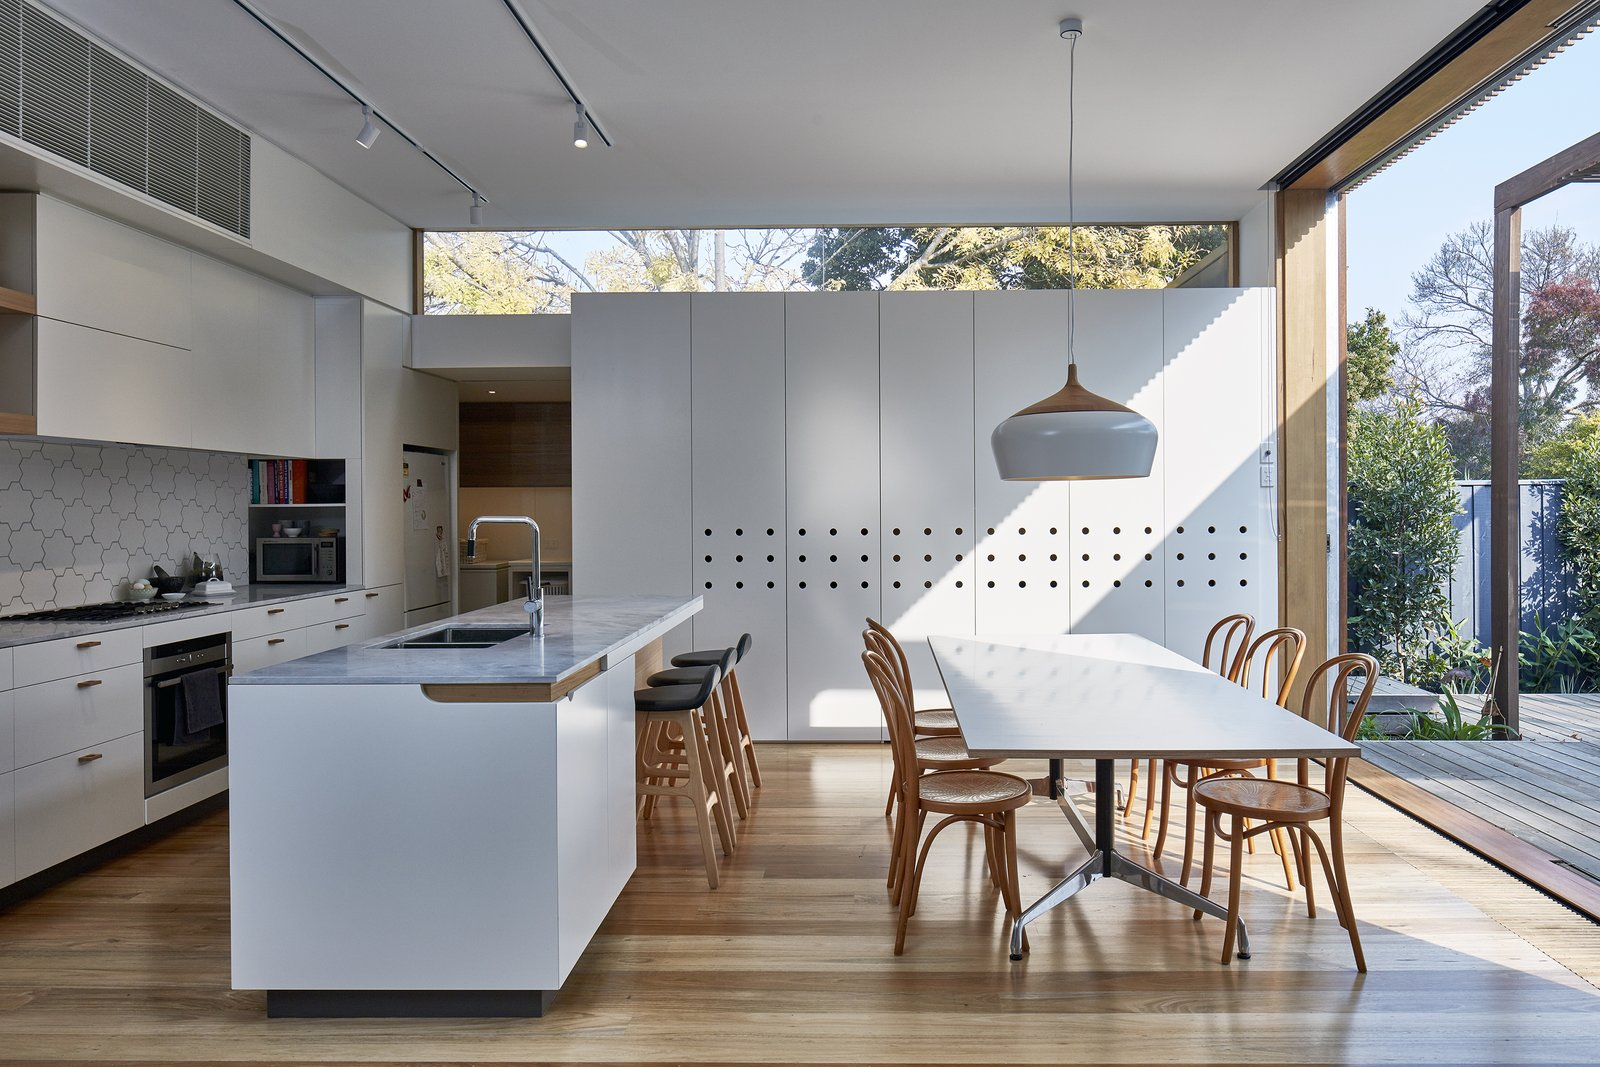 Dining Room, Track Lighting, Pendant Lighting, Chair, Table, Light Hardwood Floor, and Stools Plenty of white finishes give the interiors a clean, bright look.  Photos from Wooden Screens Shade This Sustainable Melbourne Residence